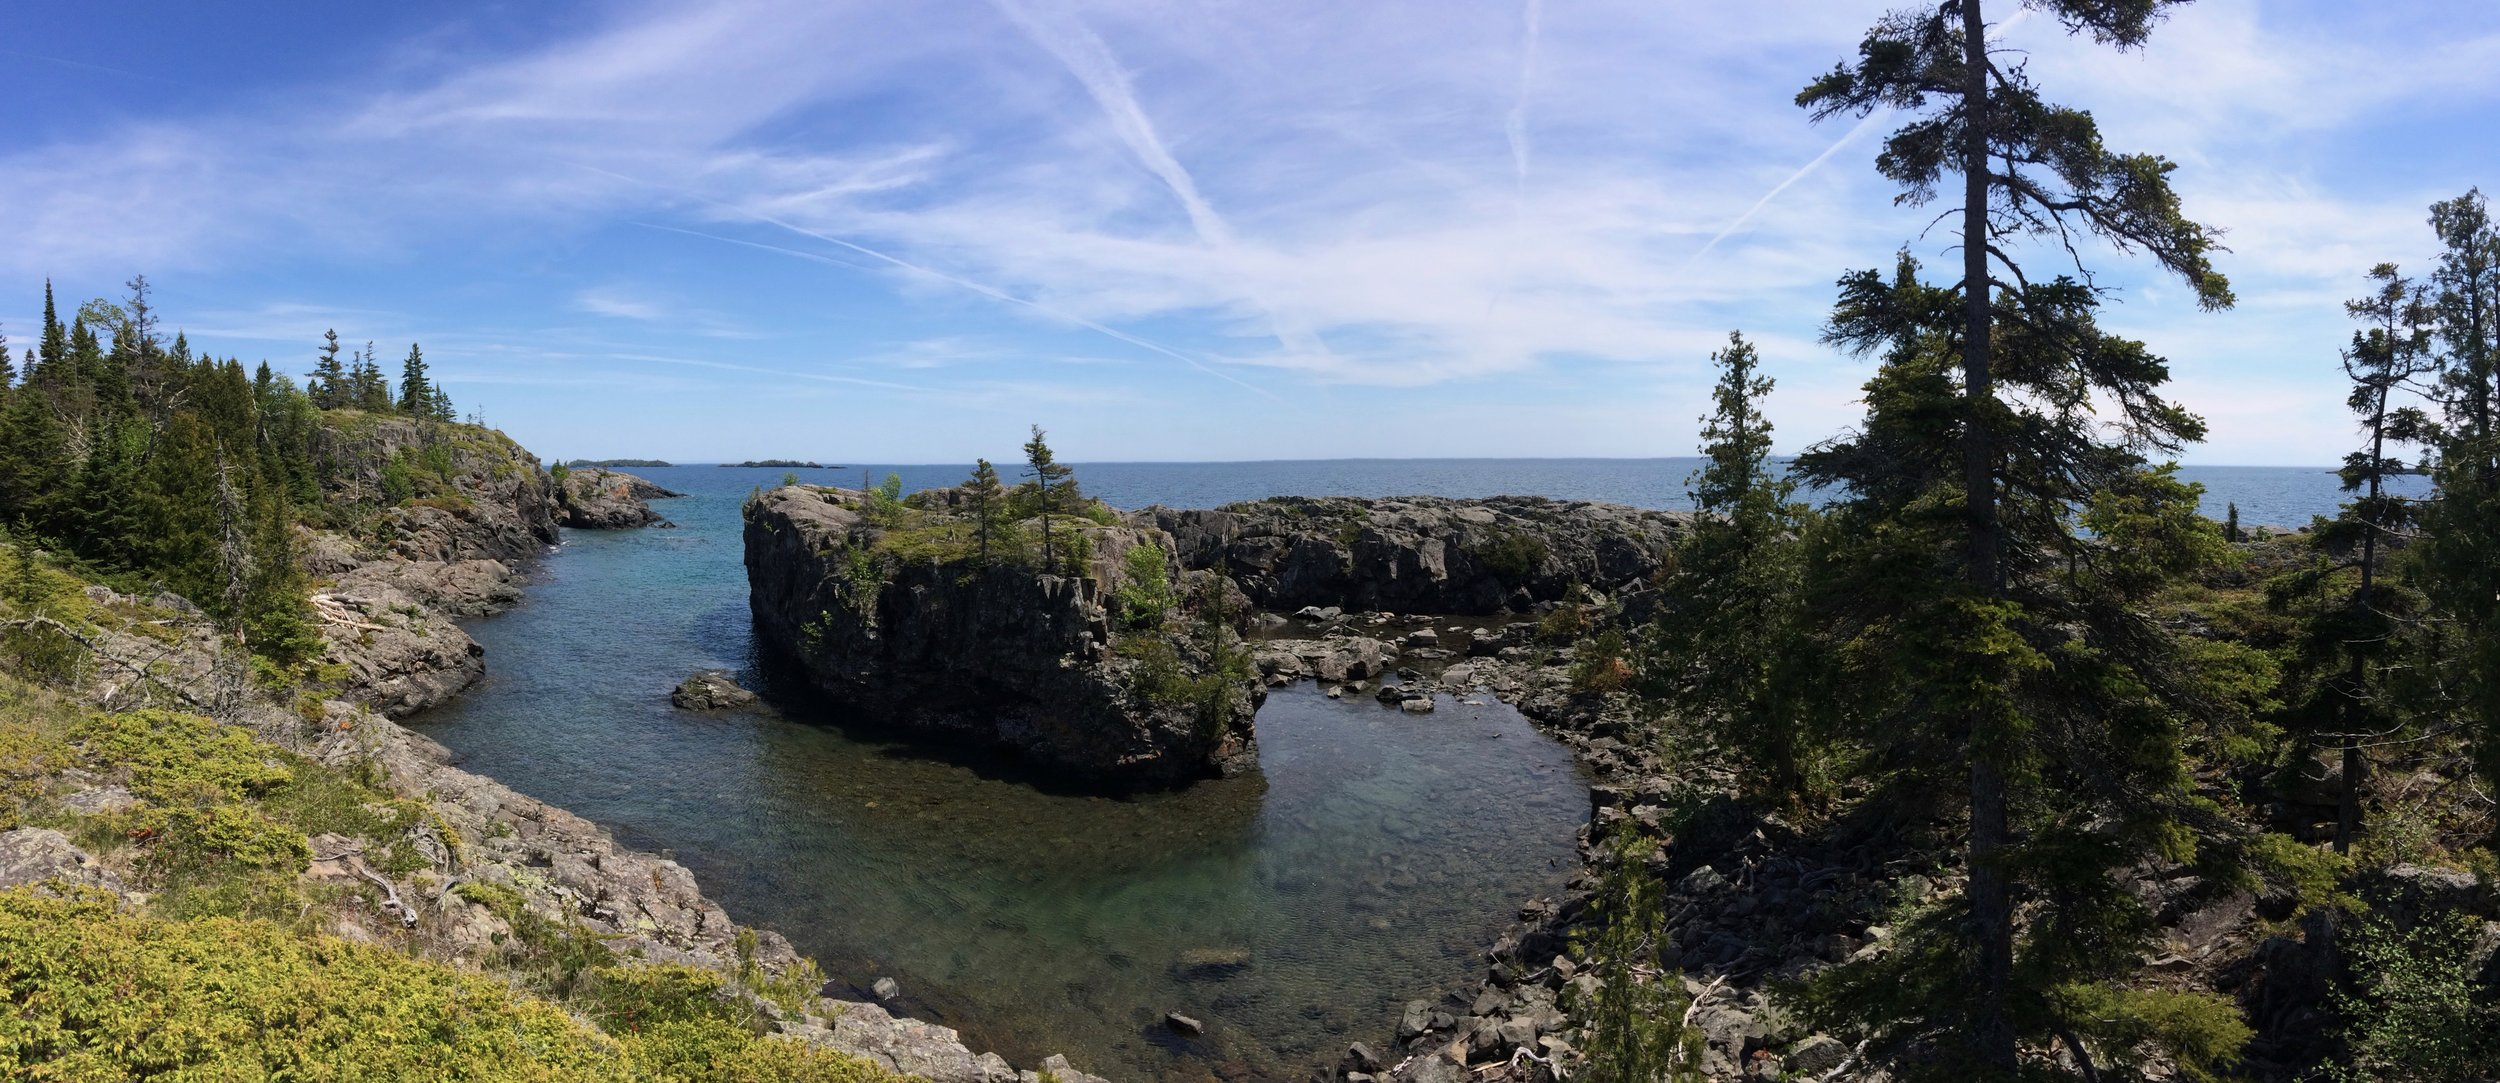 View from Scoville Trail on the two-mile hike from Rock Harbor to Dassler Cabin